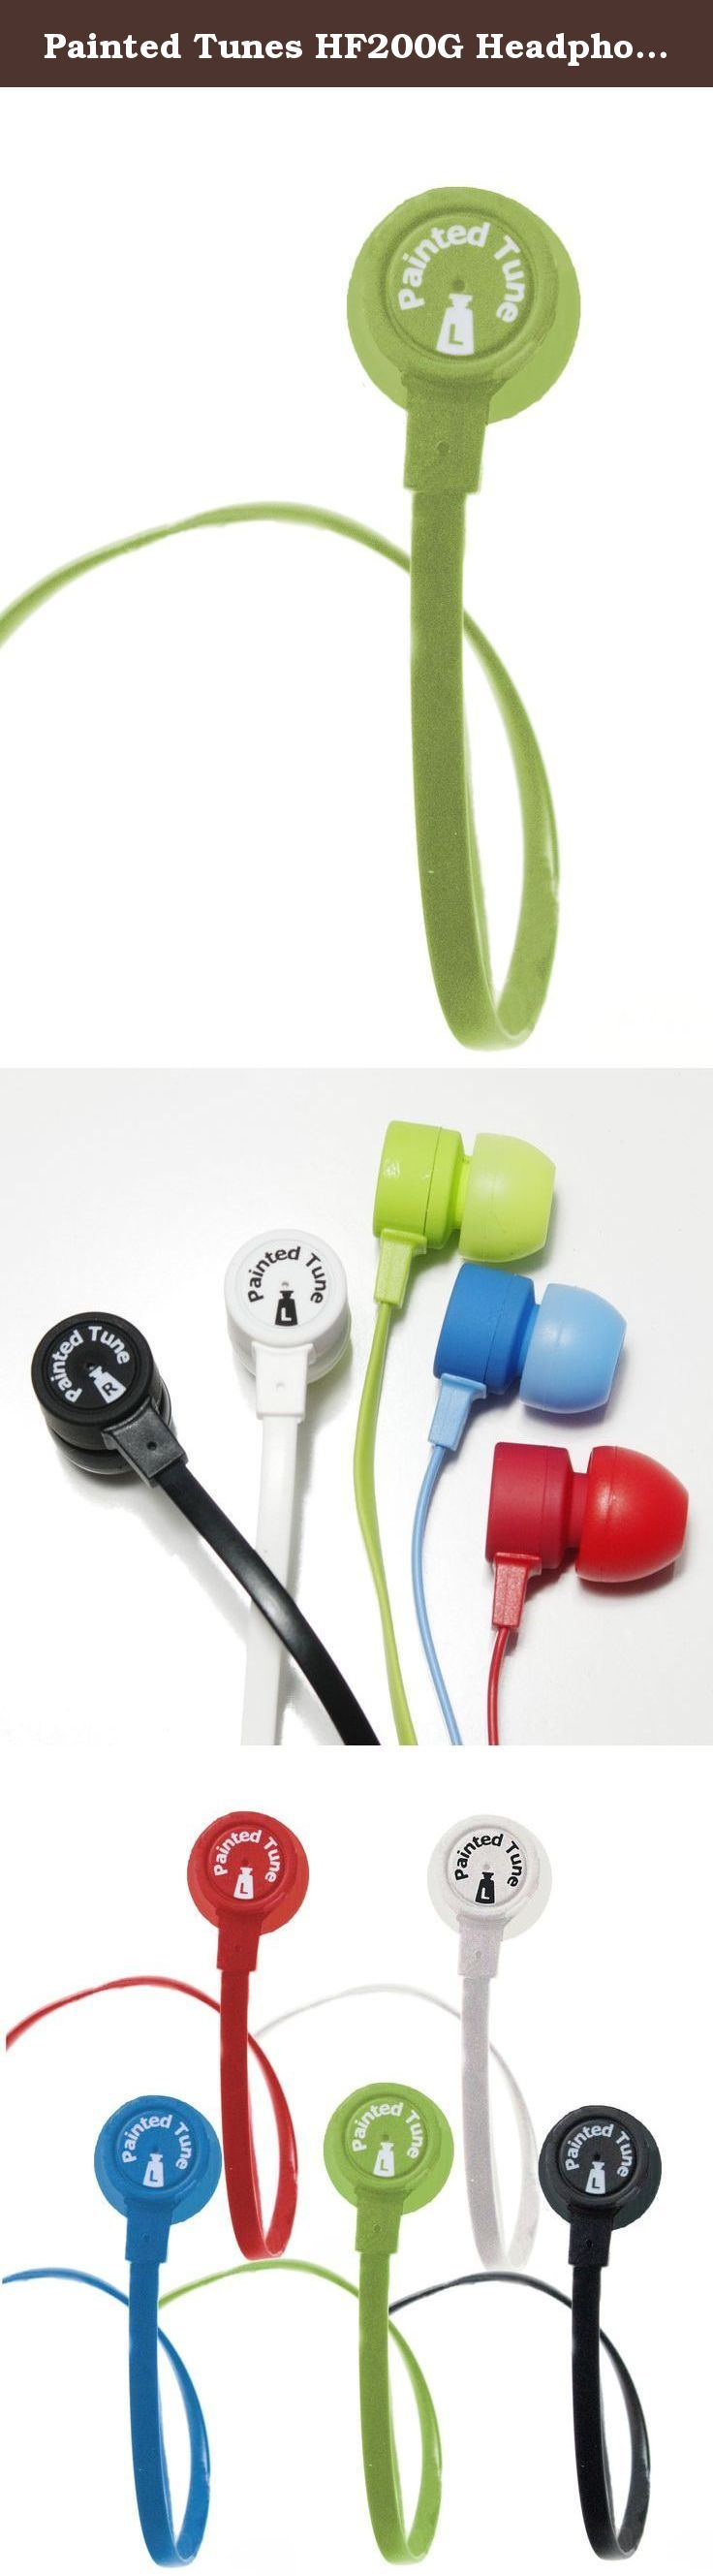 Painted Tunes HF200G Headphone for iPod, iPad, and Tablet (Green). Vibrant Sound in a Cool Package Painted Tunes High-Performance Headphones are an ideal mix of high quality audio, unique design and convenience - all for a reasonable price. Unlike any other pair of ear buds, they come in a fun and convenient paint tube-style package, which serves as a carrying case. The ear buds deliver the kind of rich sound and deep bass you would expect from more expensive headphones, for which you…